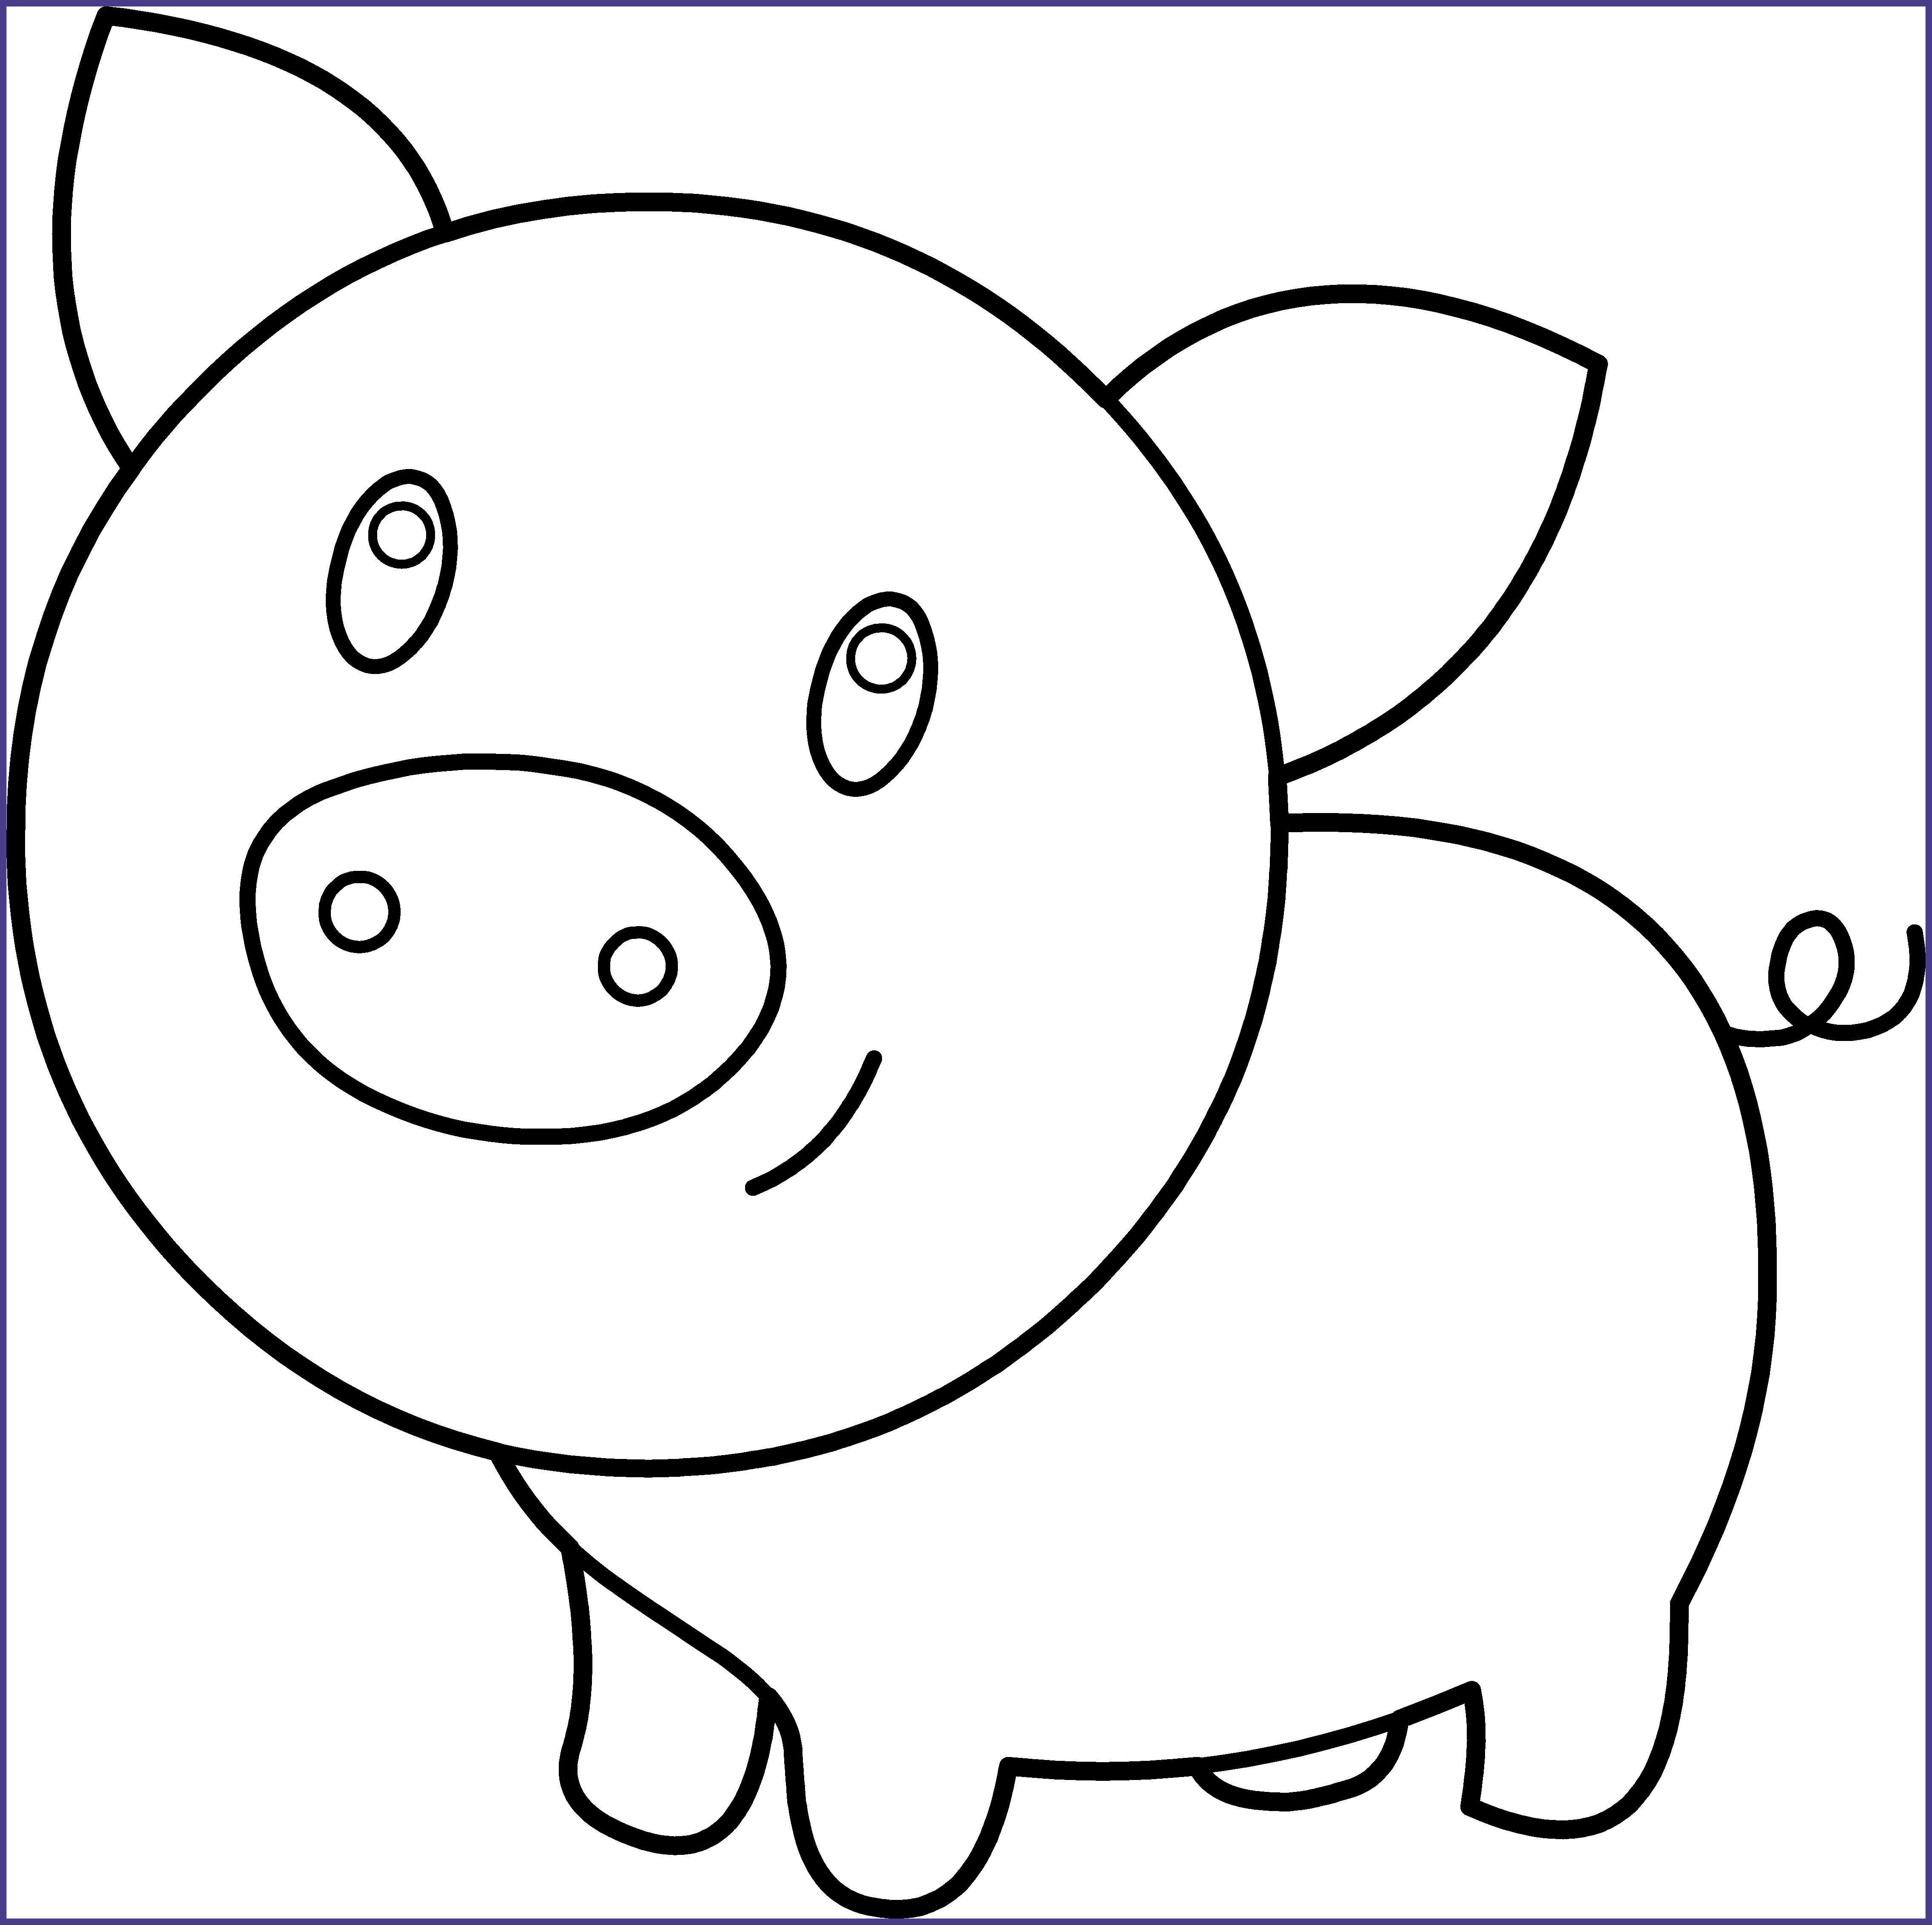 Download Unbelievable Cute Pig Clipart Black And White.